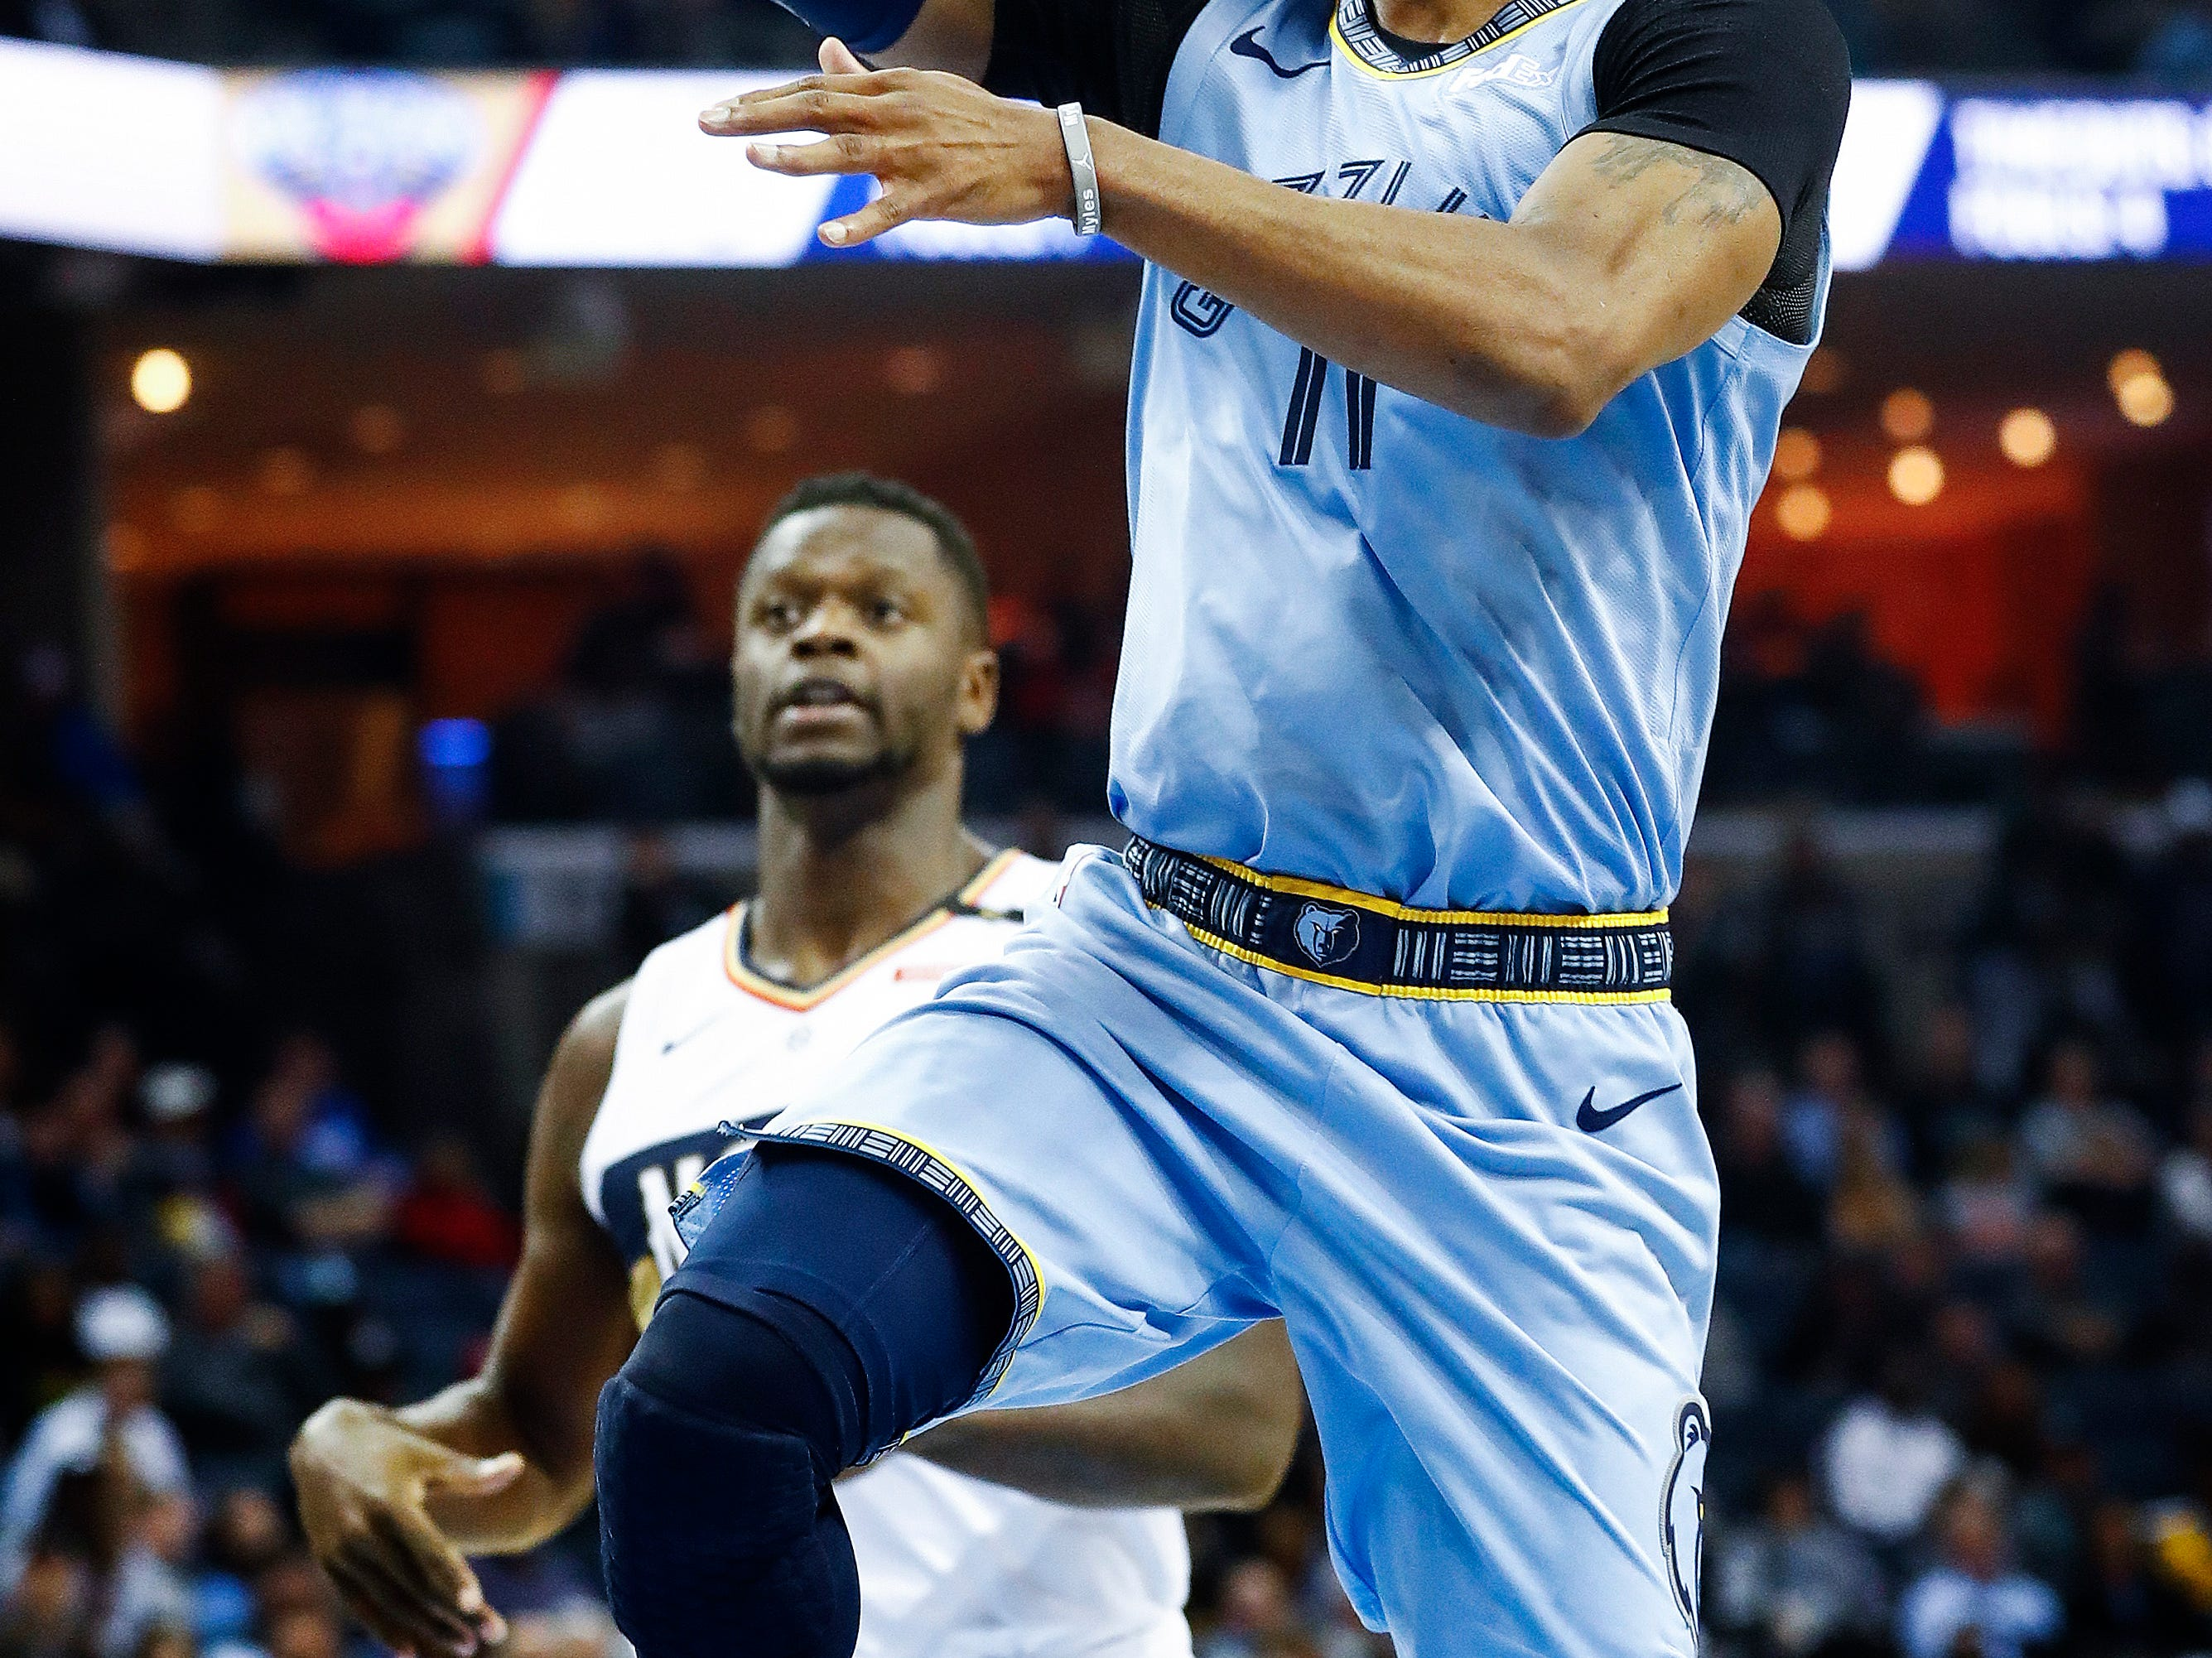 Memphis Grizzlies guard Mike Conley drives for a layup against the New Orleans Pelicans defense during action at the FedExForum in Memphis, Tenn., Monday, January 21, 2019.